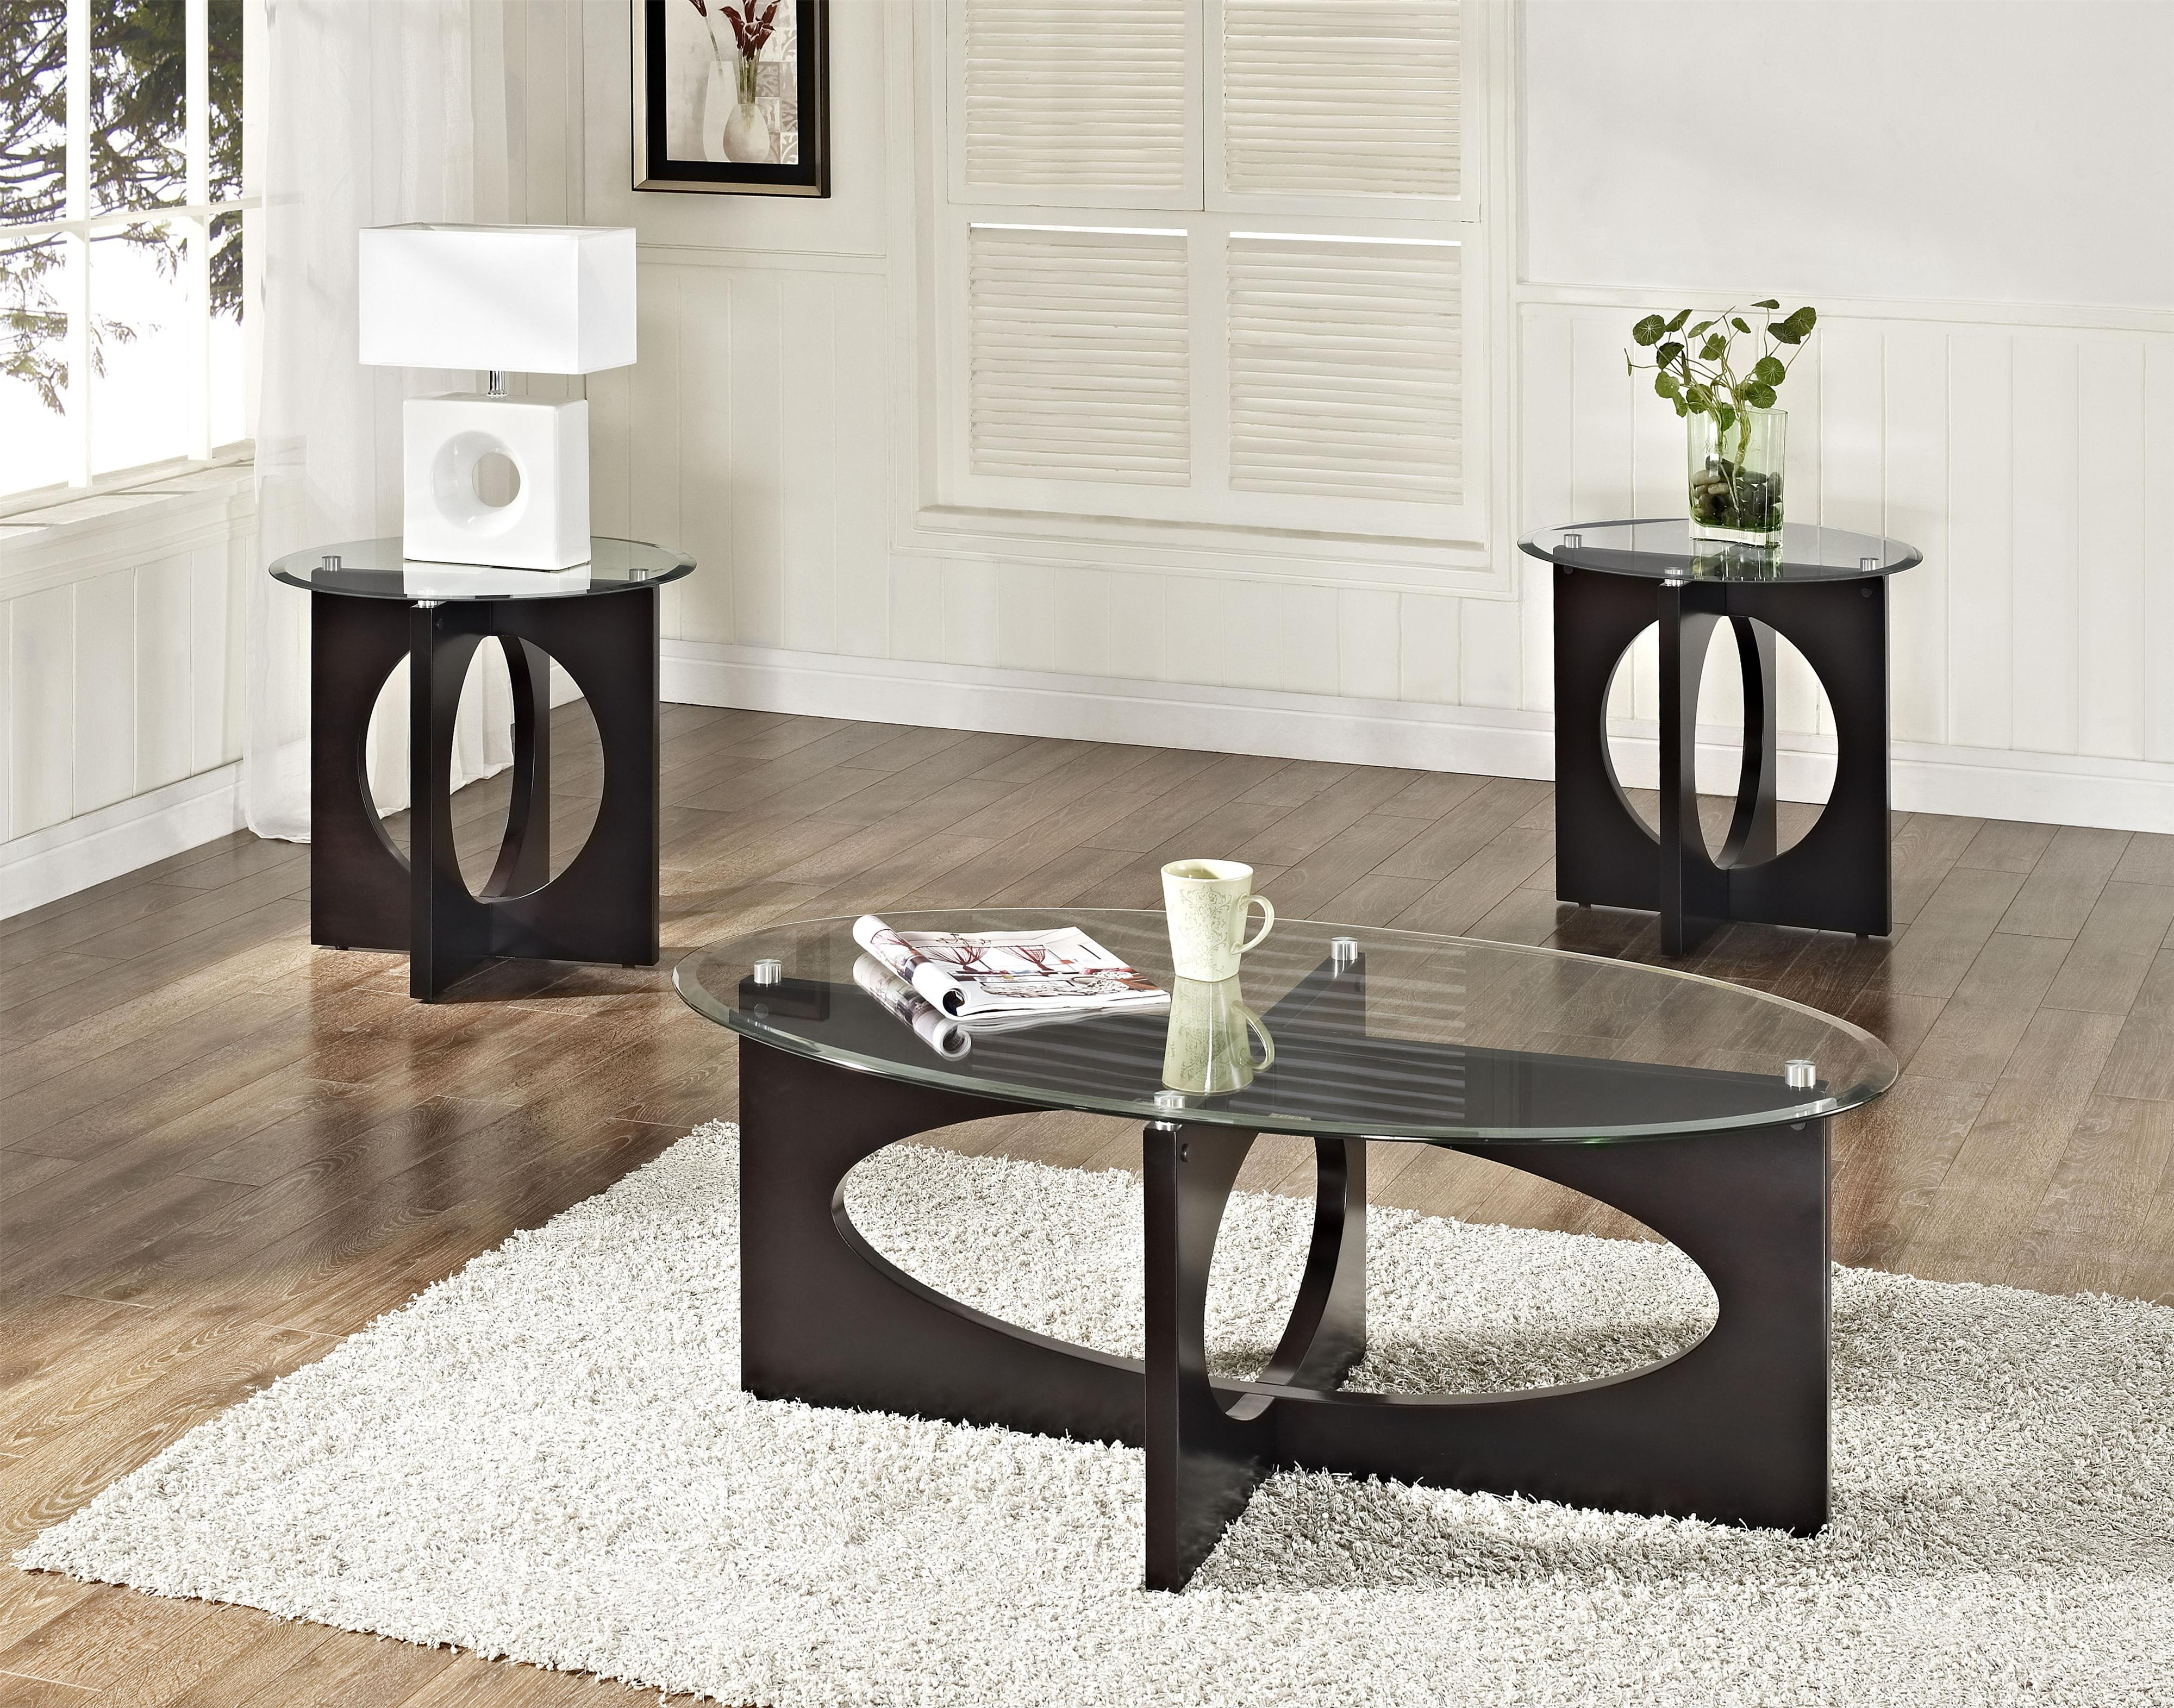 Sensational Dania 28150 By Standard Furniture Esprit Decor Home Gmtry Best Dining Table And Chair Ideas Images Gmtryco